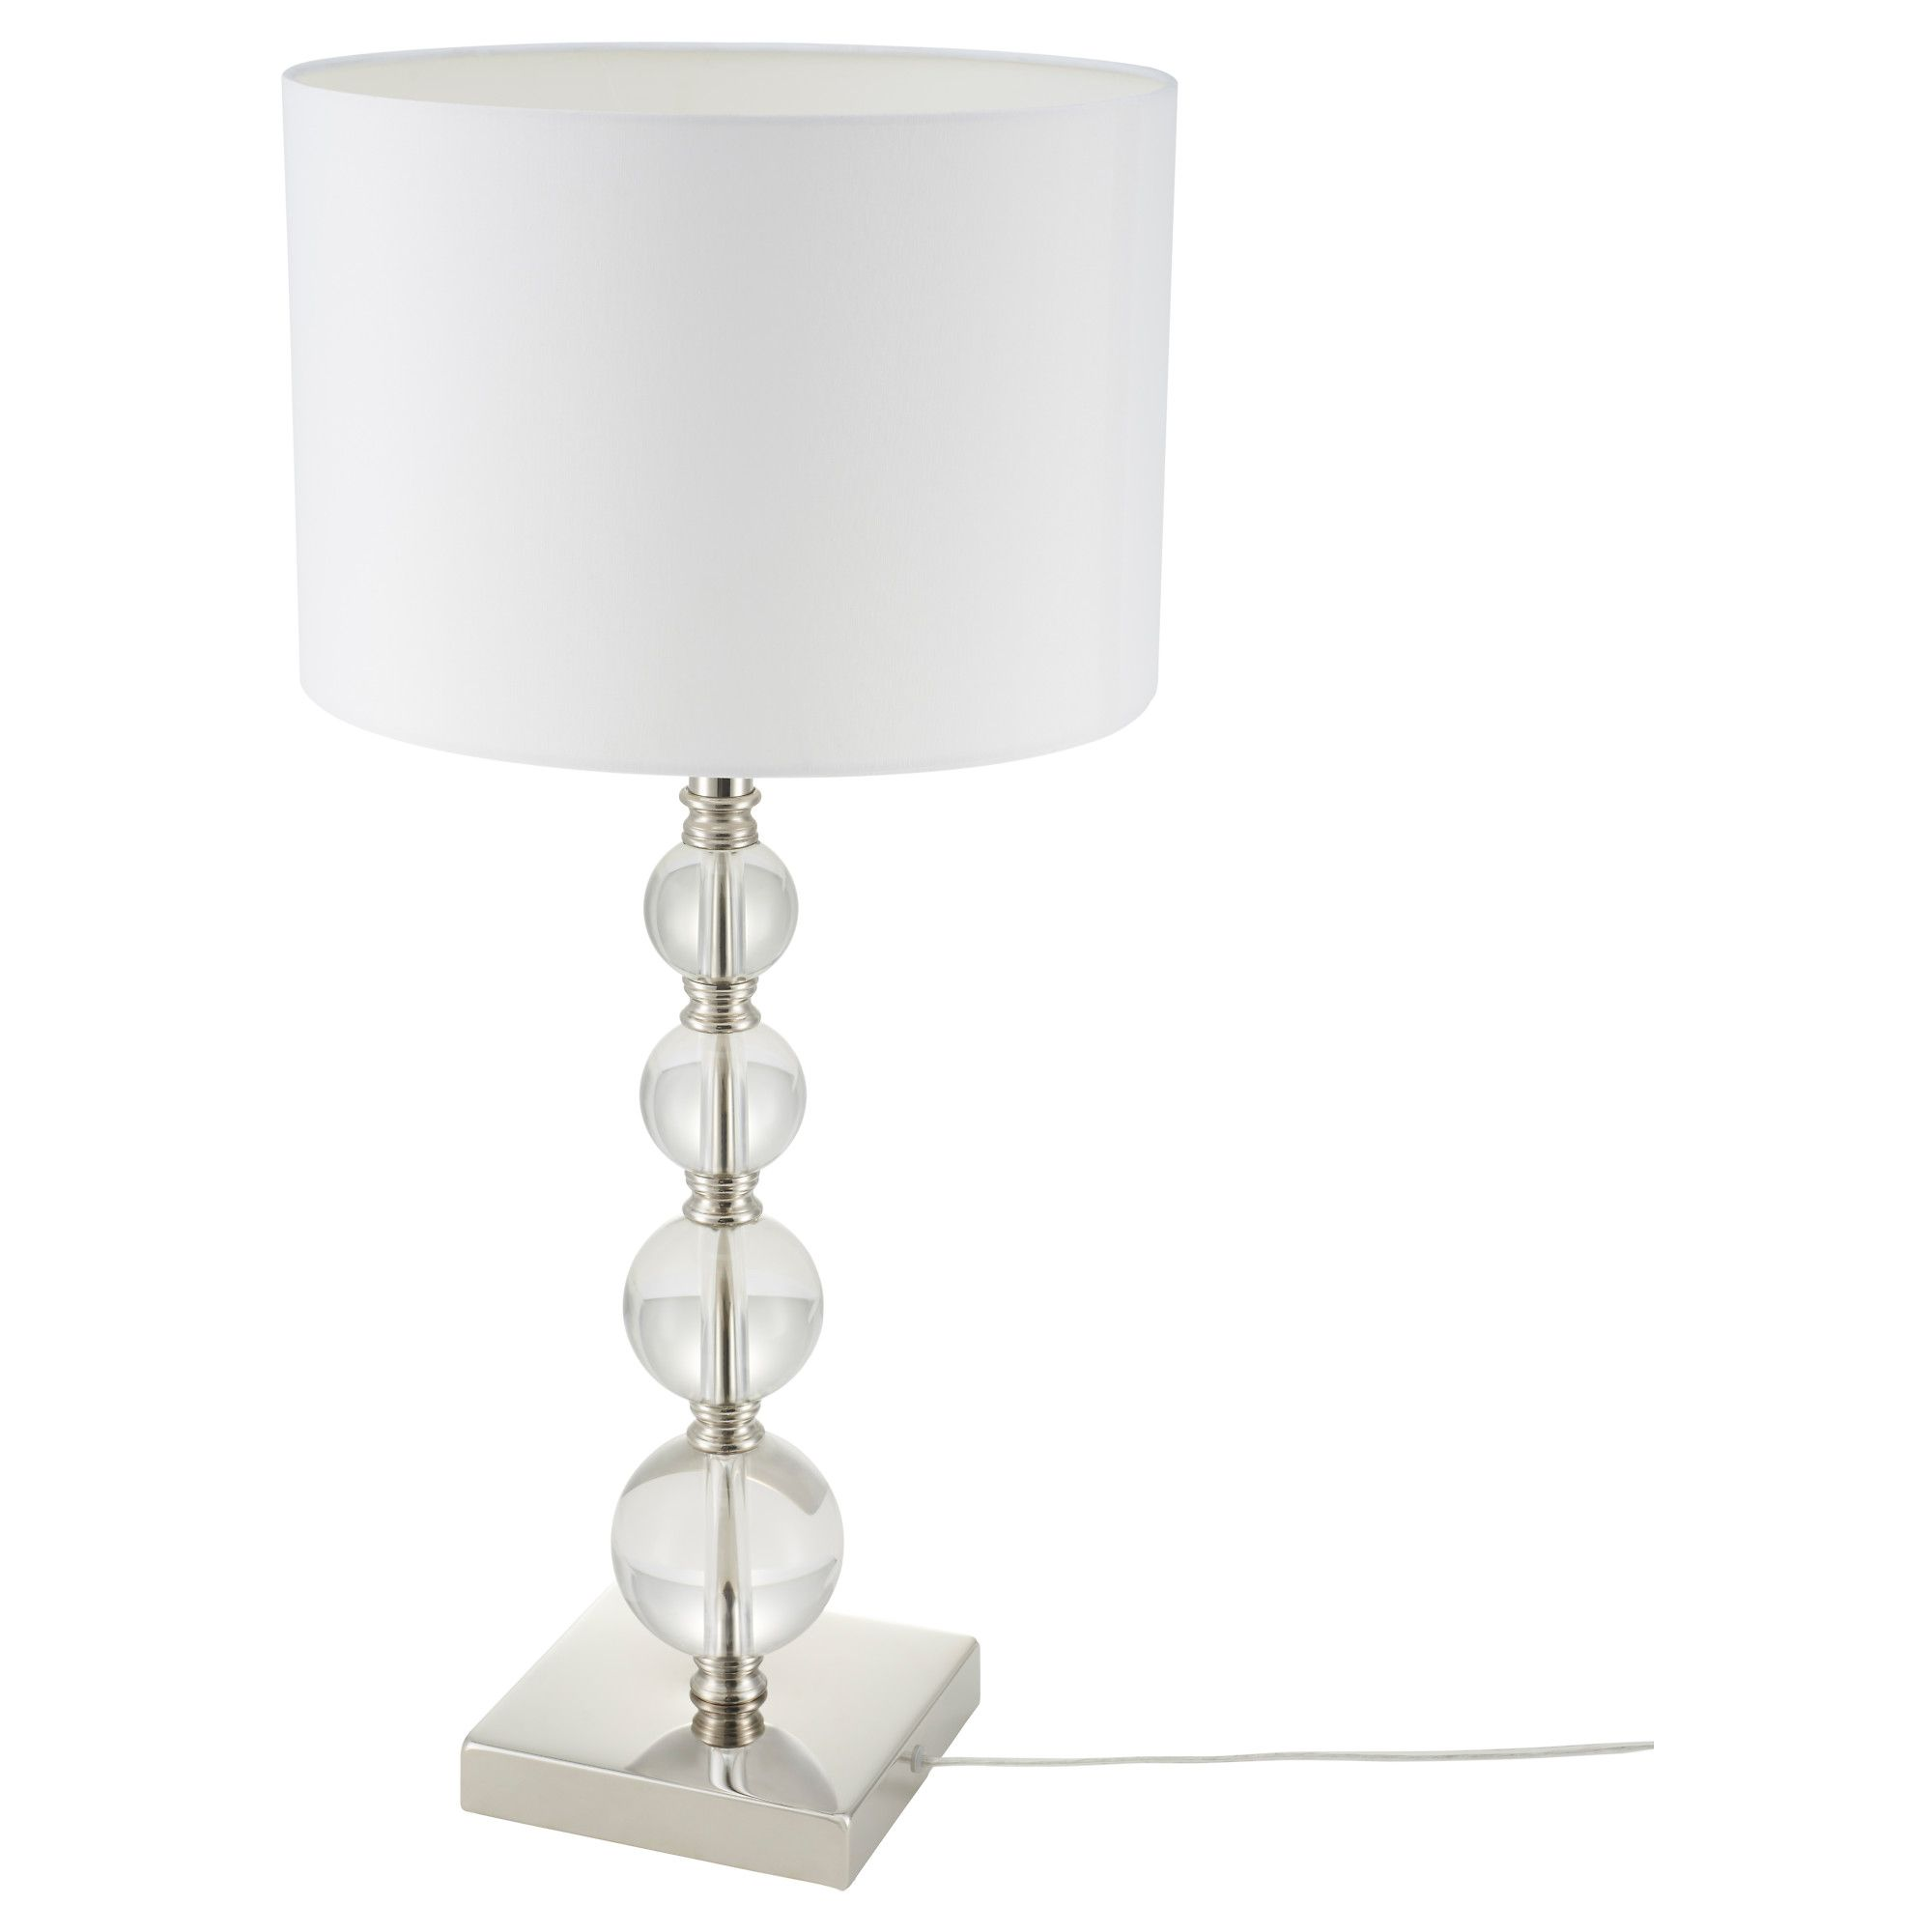 Delicieux ROXMO Table Lamp   IKEA